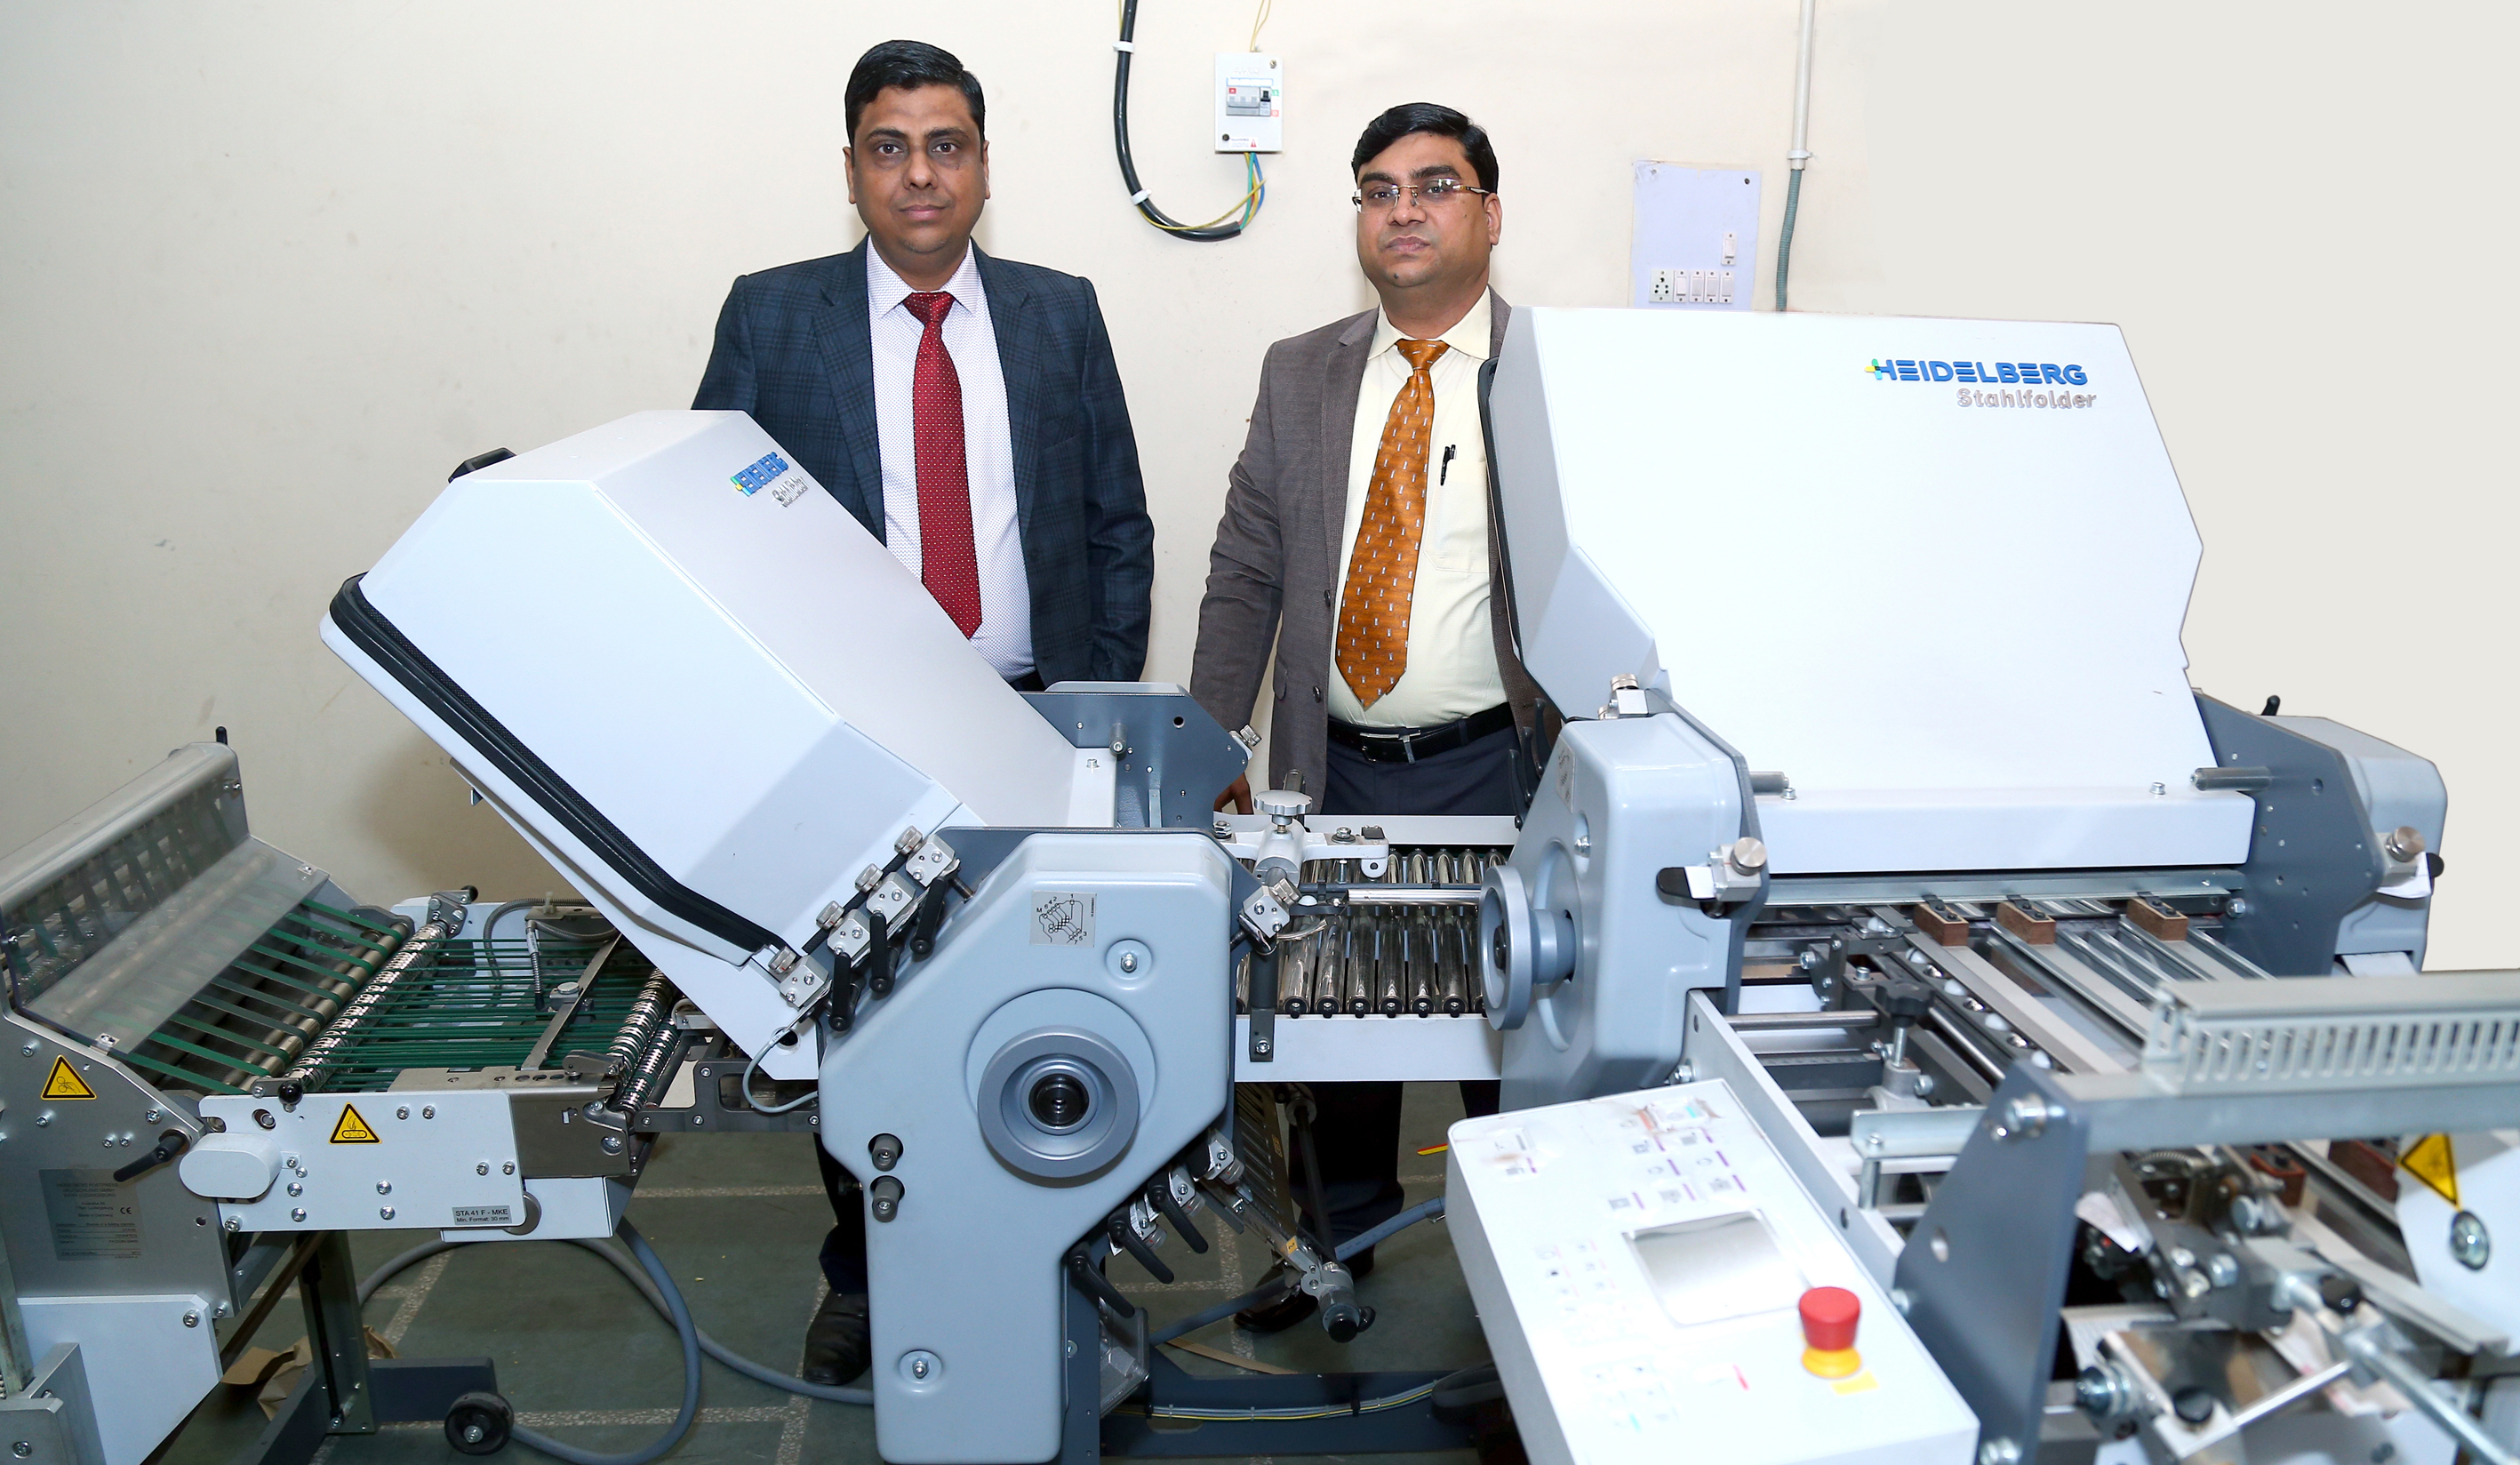 (l-r) Pradeep Kumar Jain and Anuj Kumar Jain with the Stahl paper folding machine